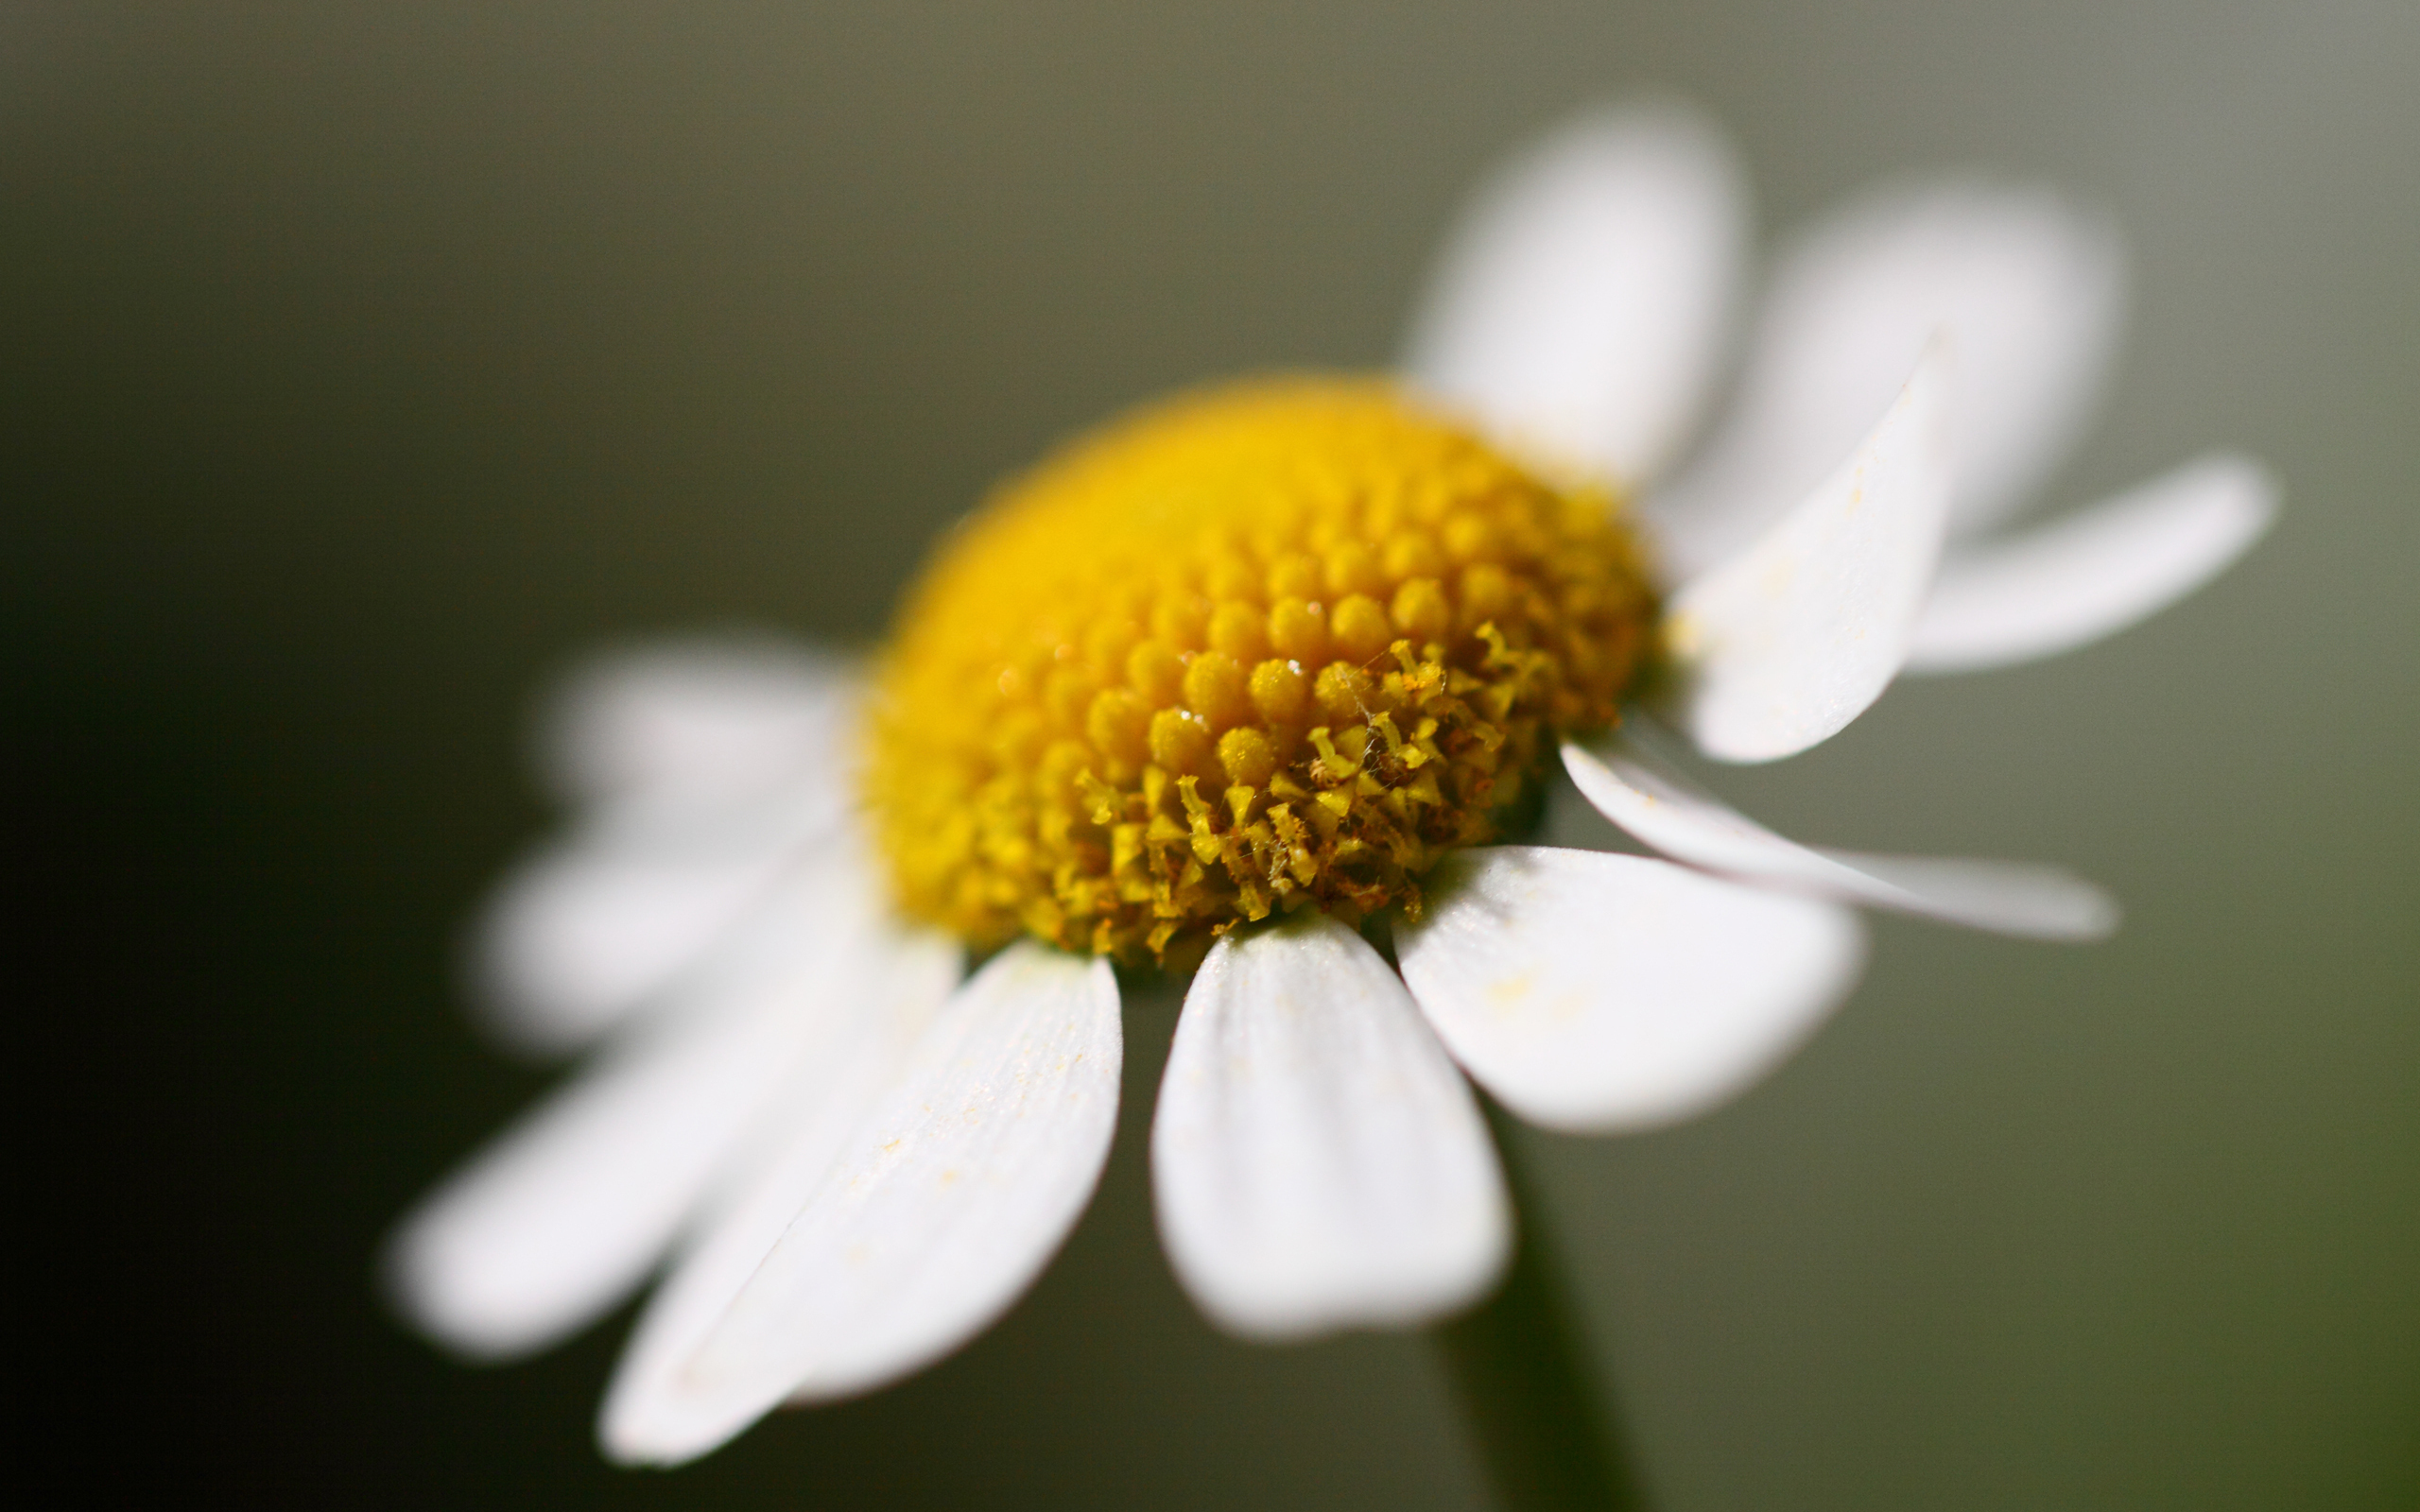 madeliefje, daisy